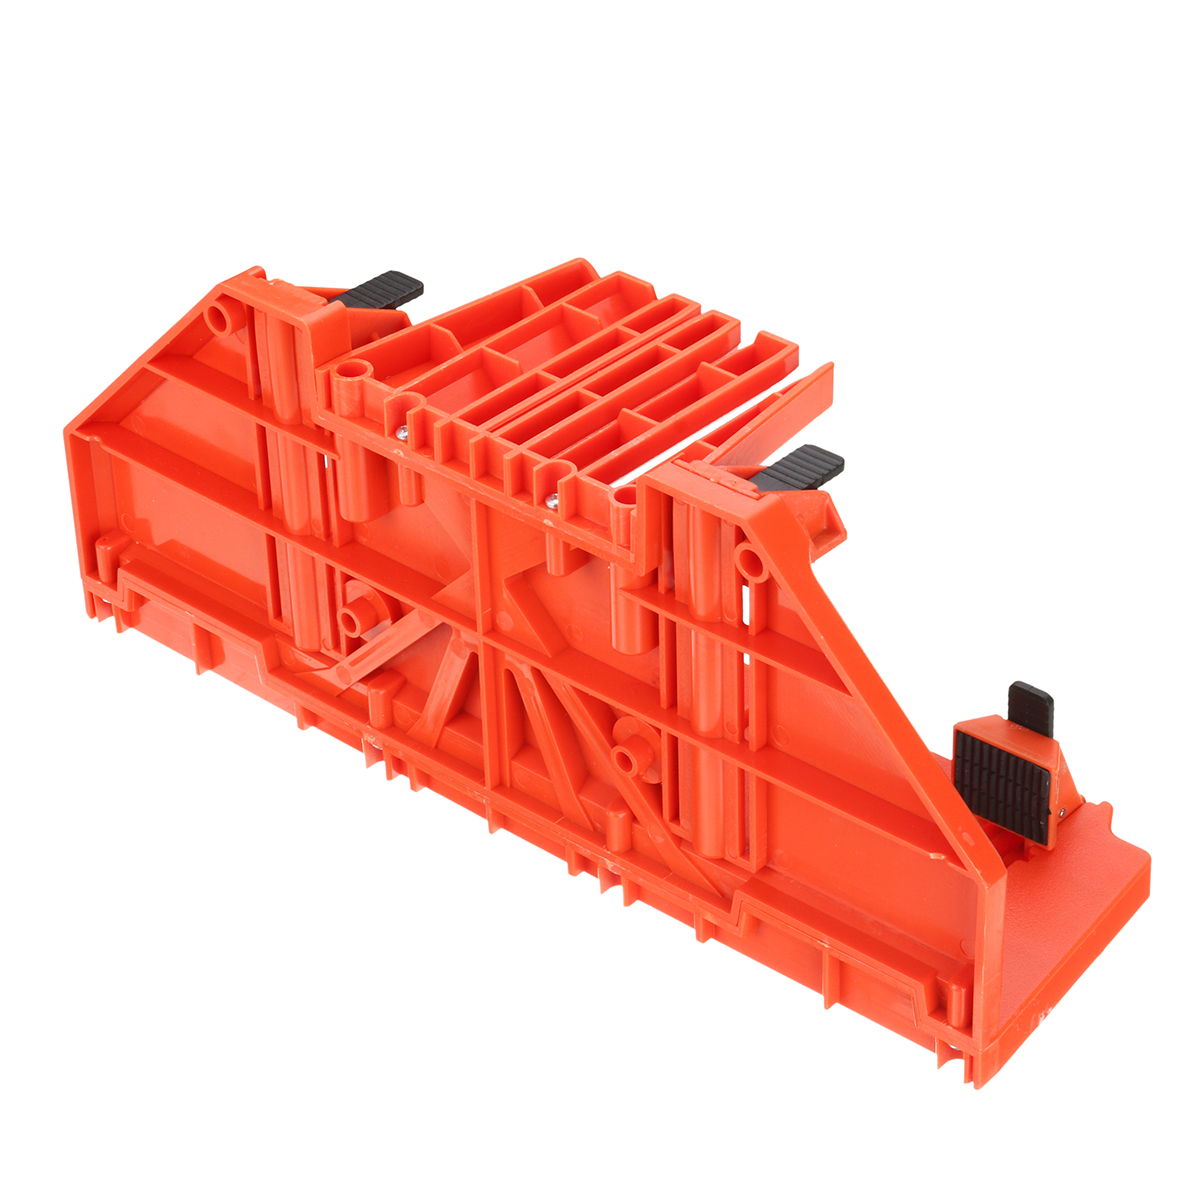 14 Inch Mitre Box Saw Cabinet Case Woodworking Oblique Angle Hand Clip Cutting Tool